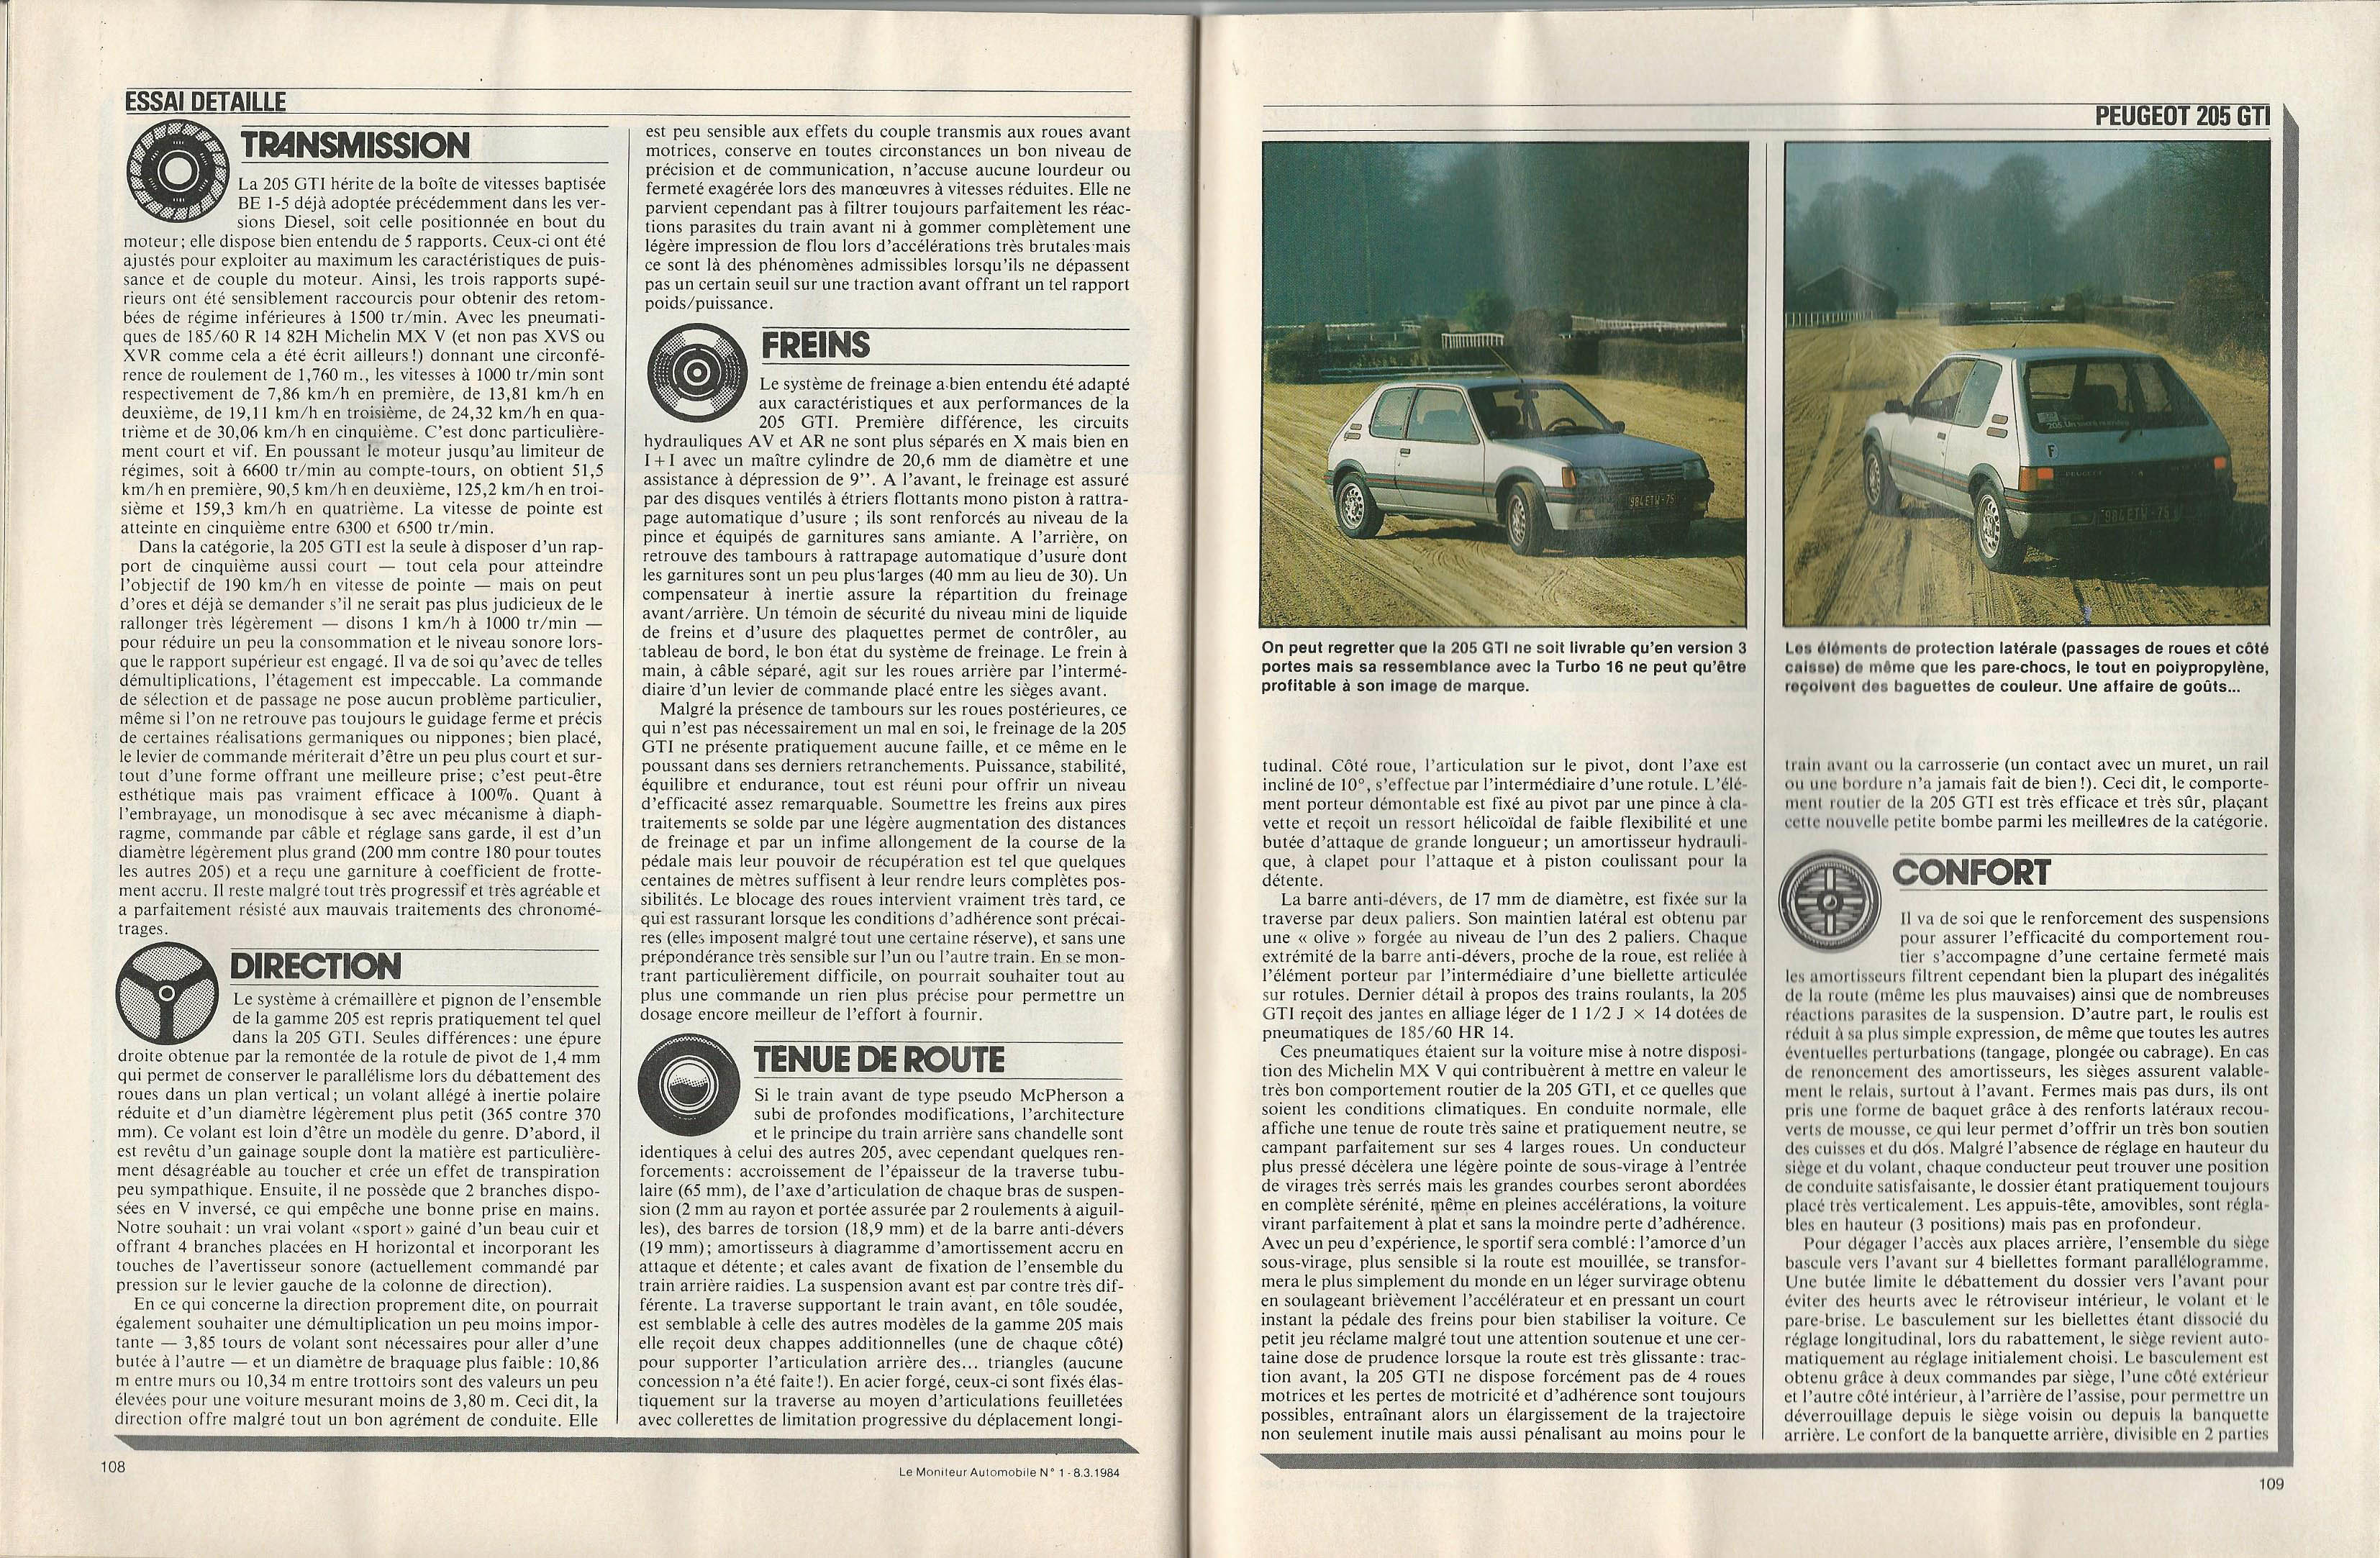 Moniteur Automobile 01 - 08 Mars 1984 (46)